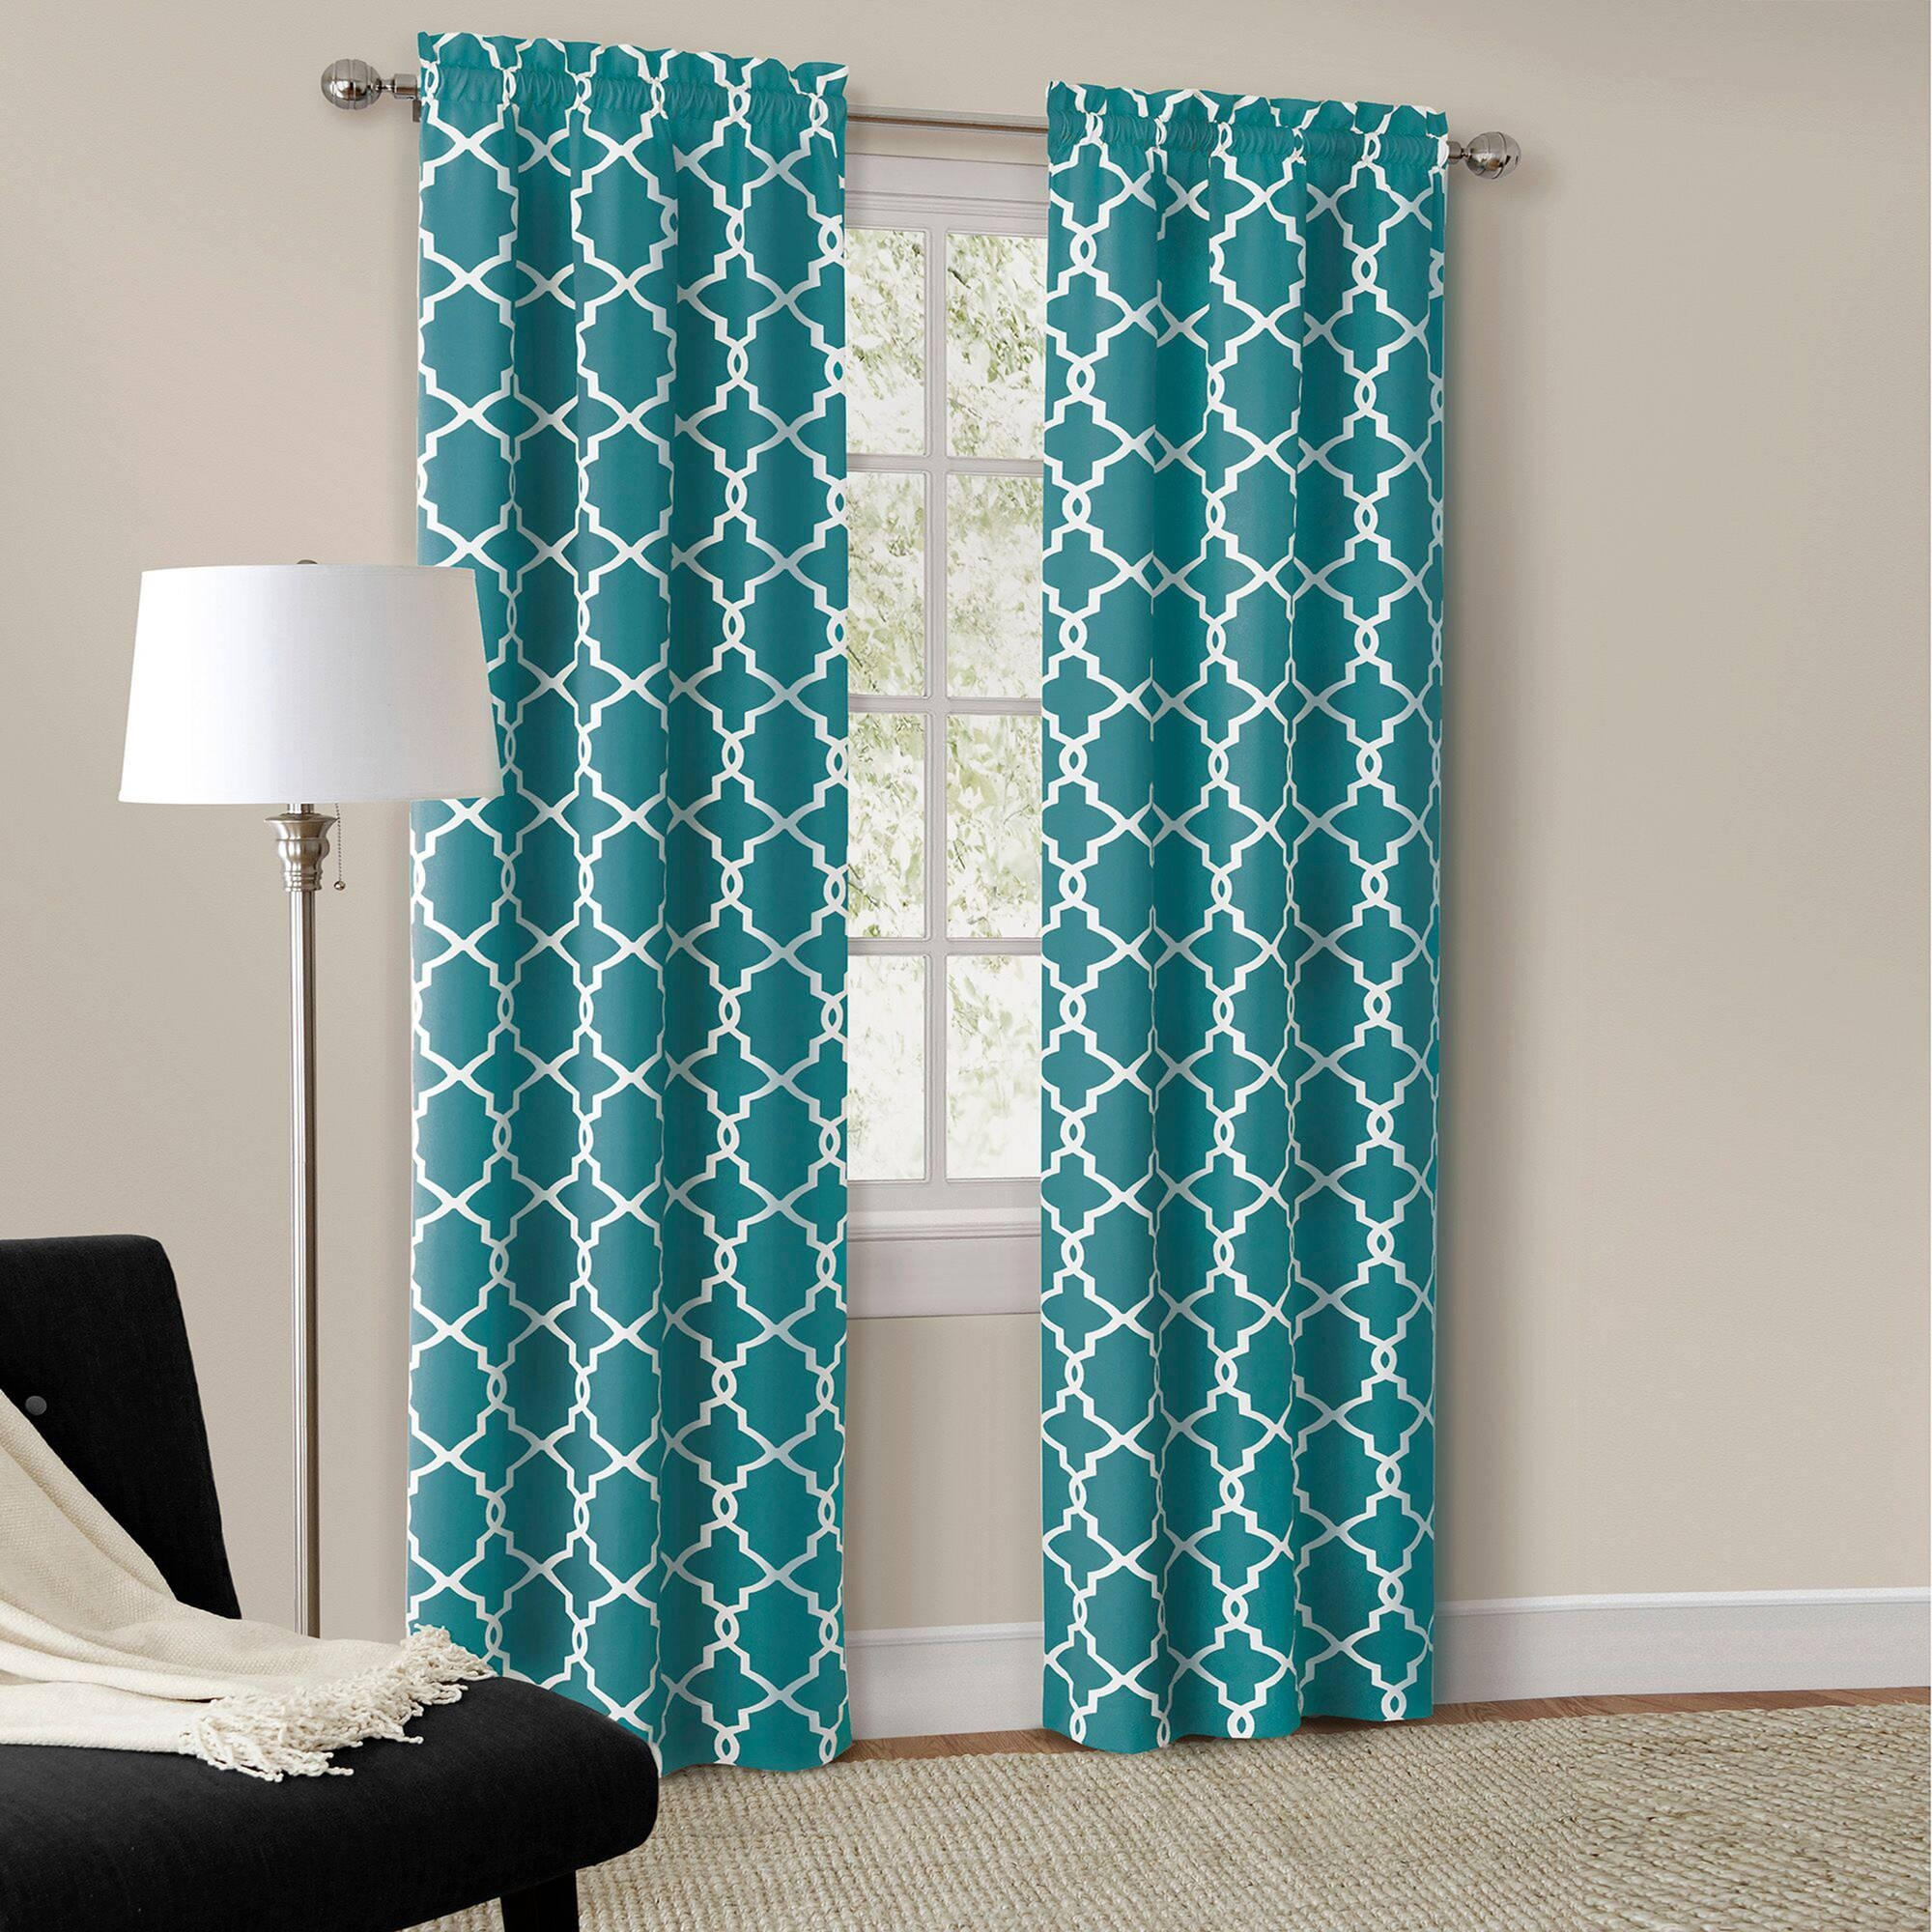 Window Blackout Drapes Walmart Curtains And Drapes 72 Inch With Turquoise Trellis Curtains (Image 20 of 25)